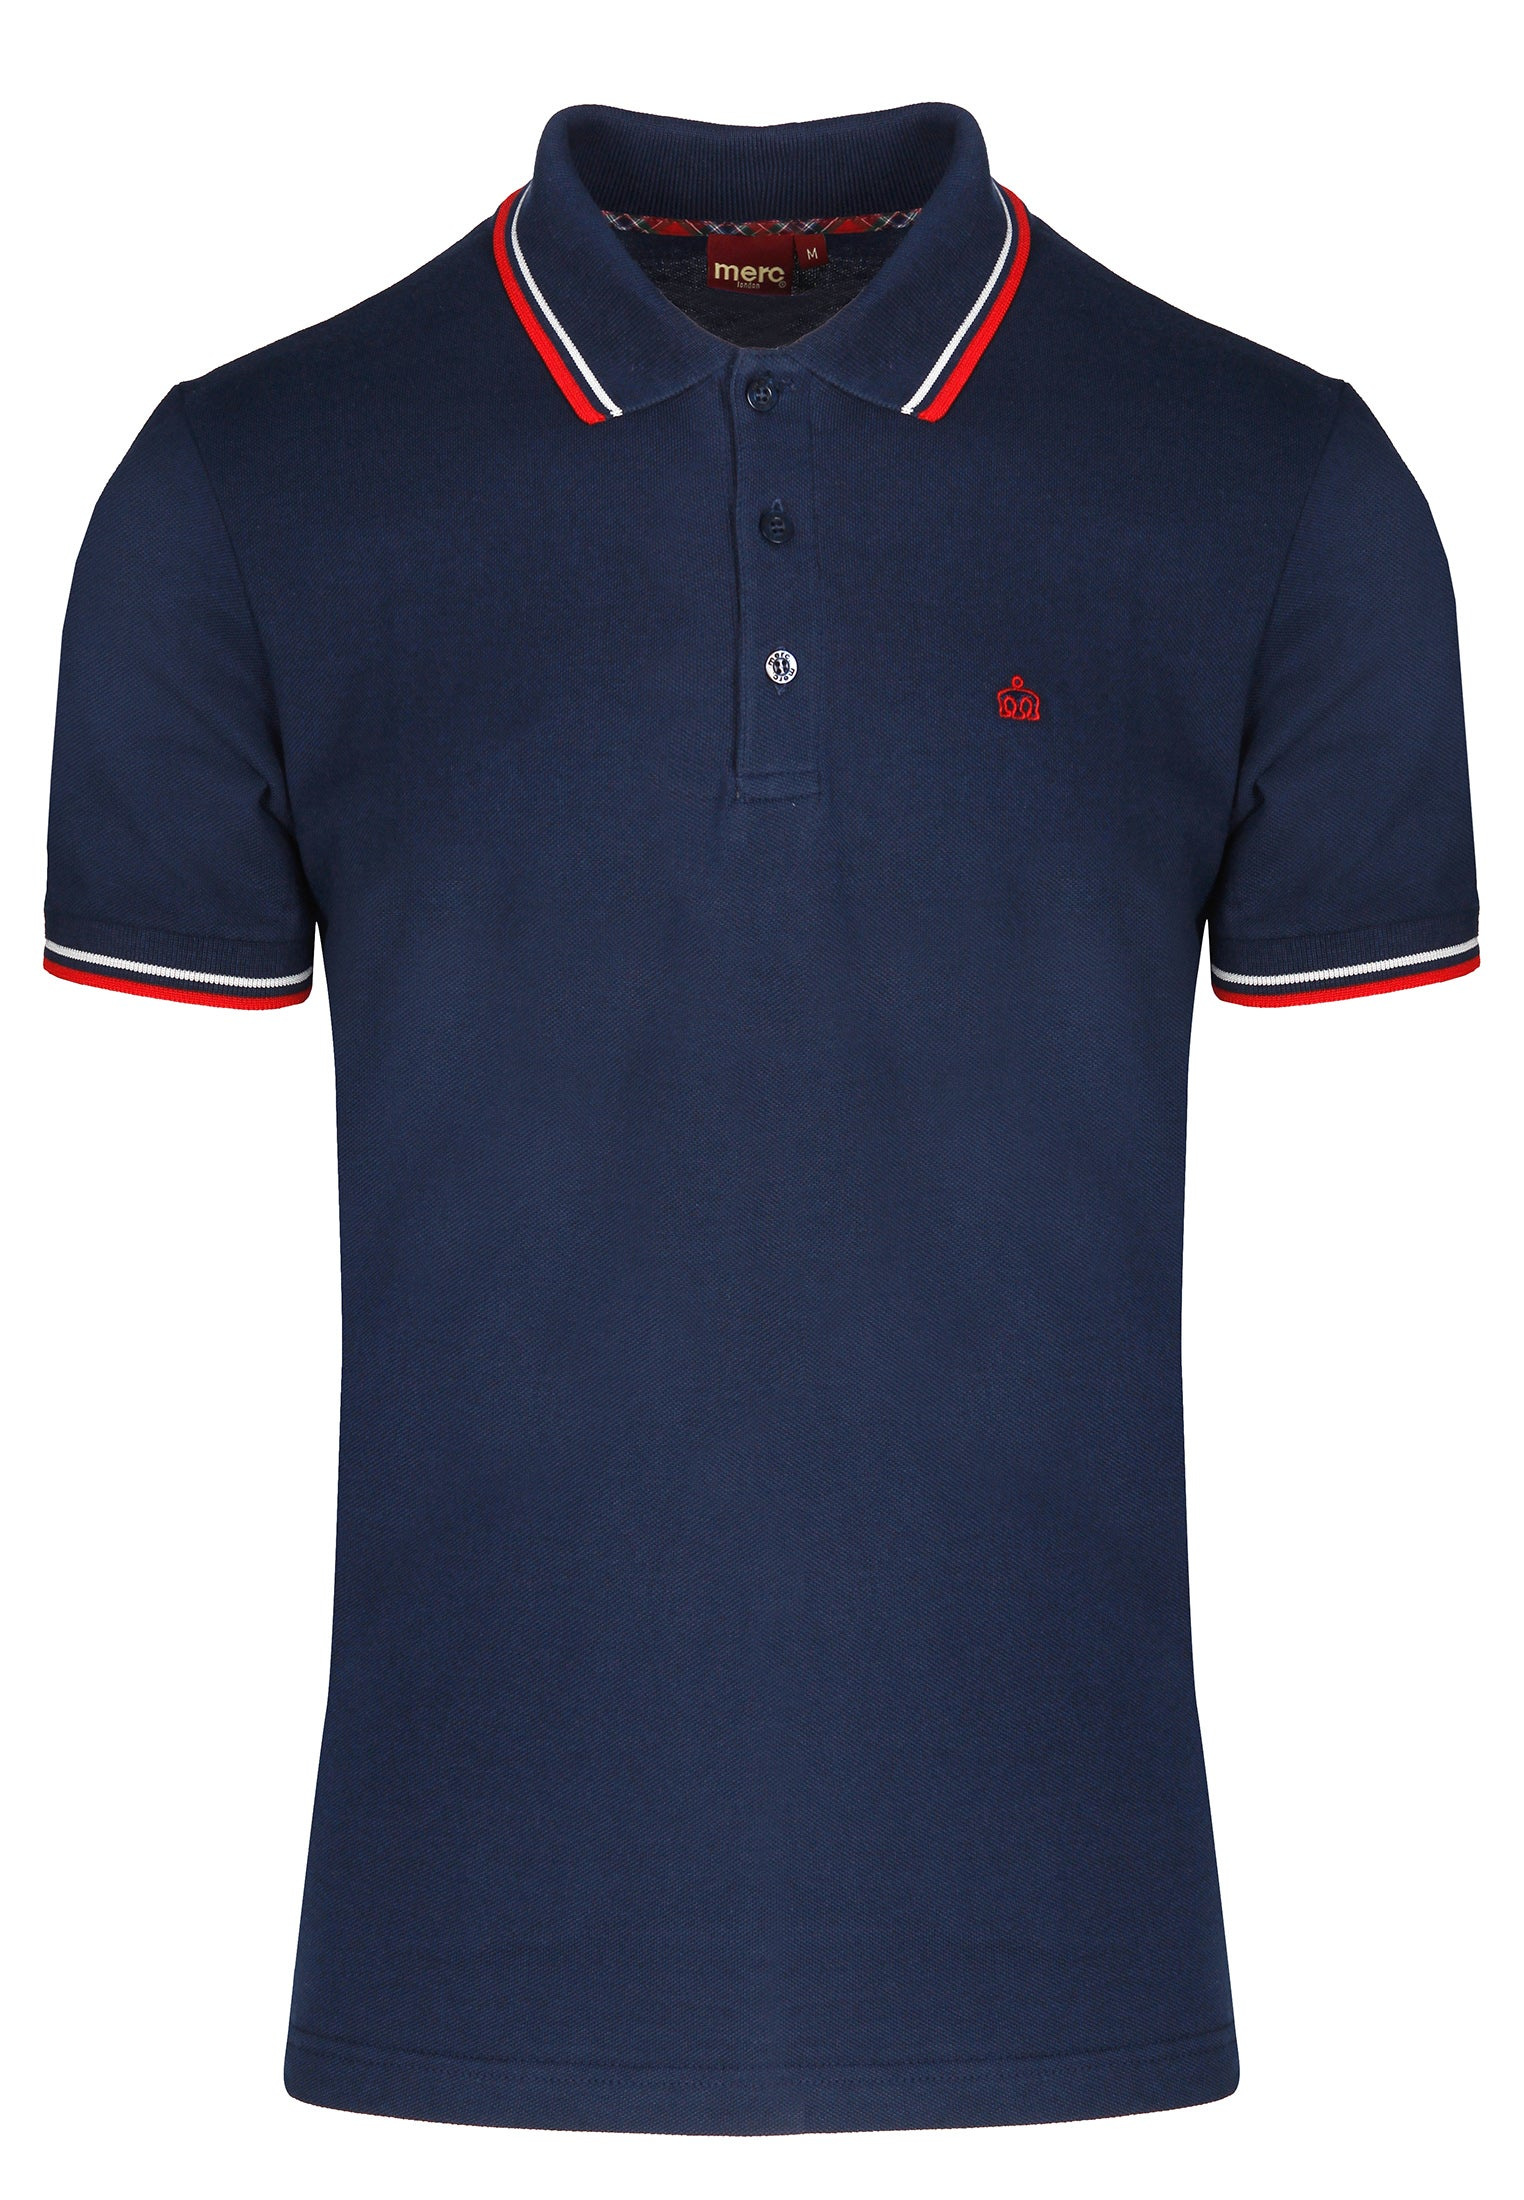 Card Polo Shirt - Merc London